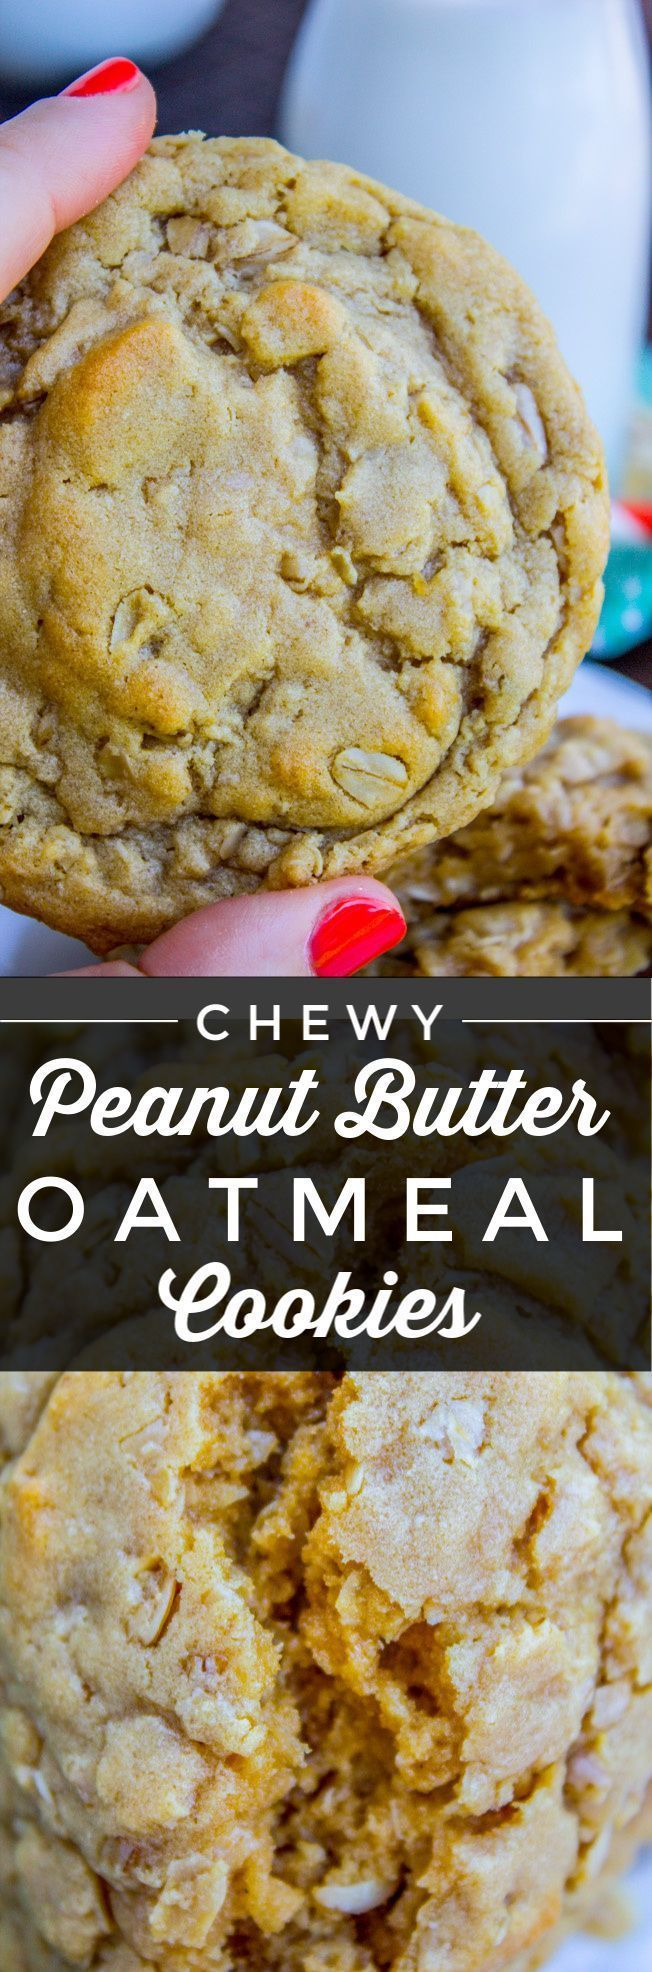 Chewy Peanut Butter Oatmeal Cookies from The Food Charlatan These Peanut Butter Oatmeal Cookies will blow your mind Tons of peanut butter flavor actual peanuts optional p...